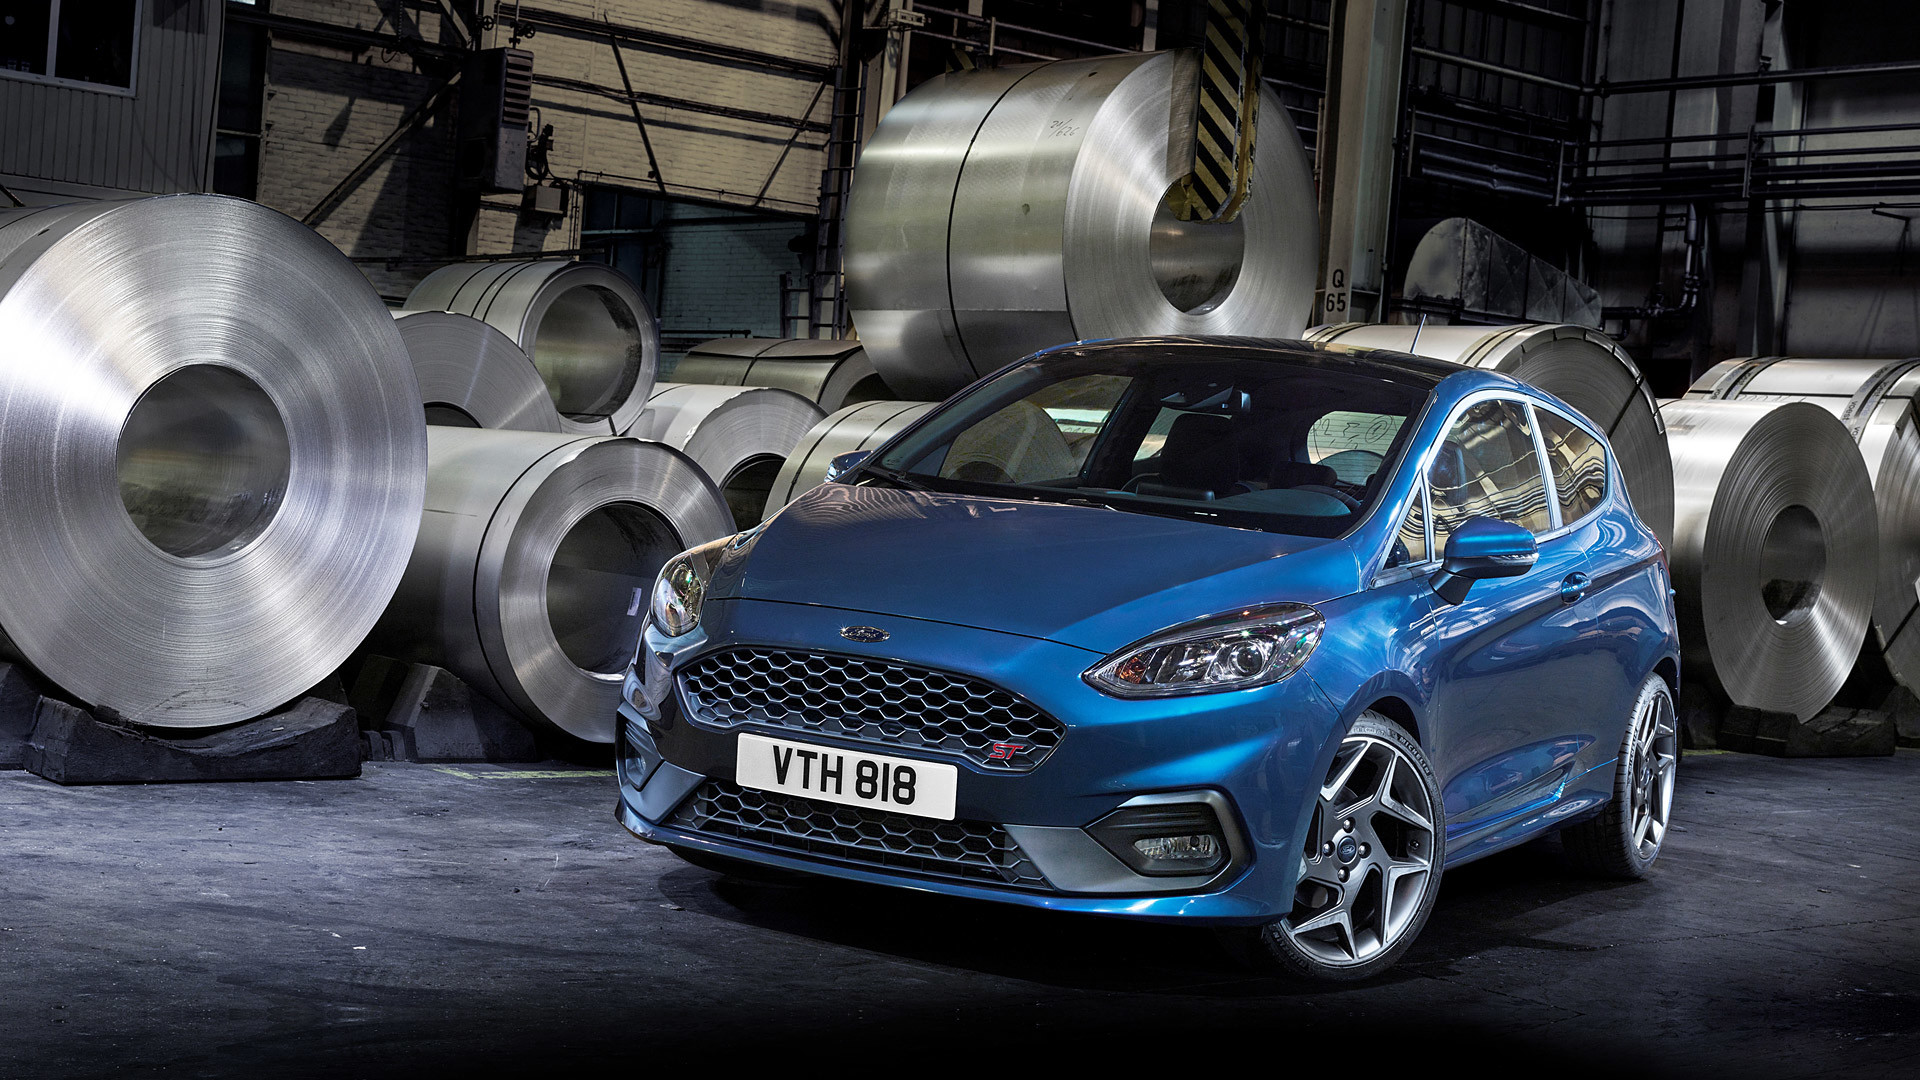 Res: 1920x1080, Ford Fiesta Wallpapers 15 - 1920 X 1080